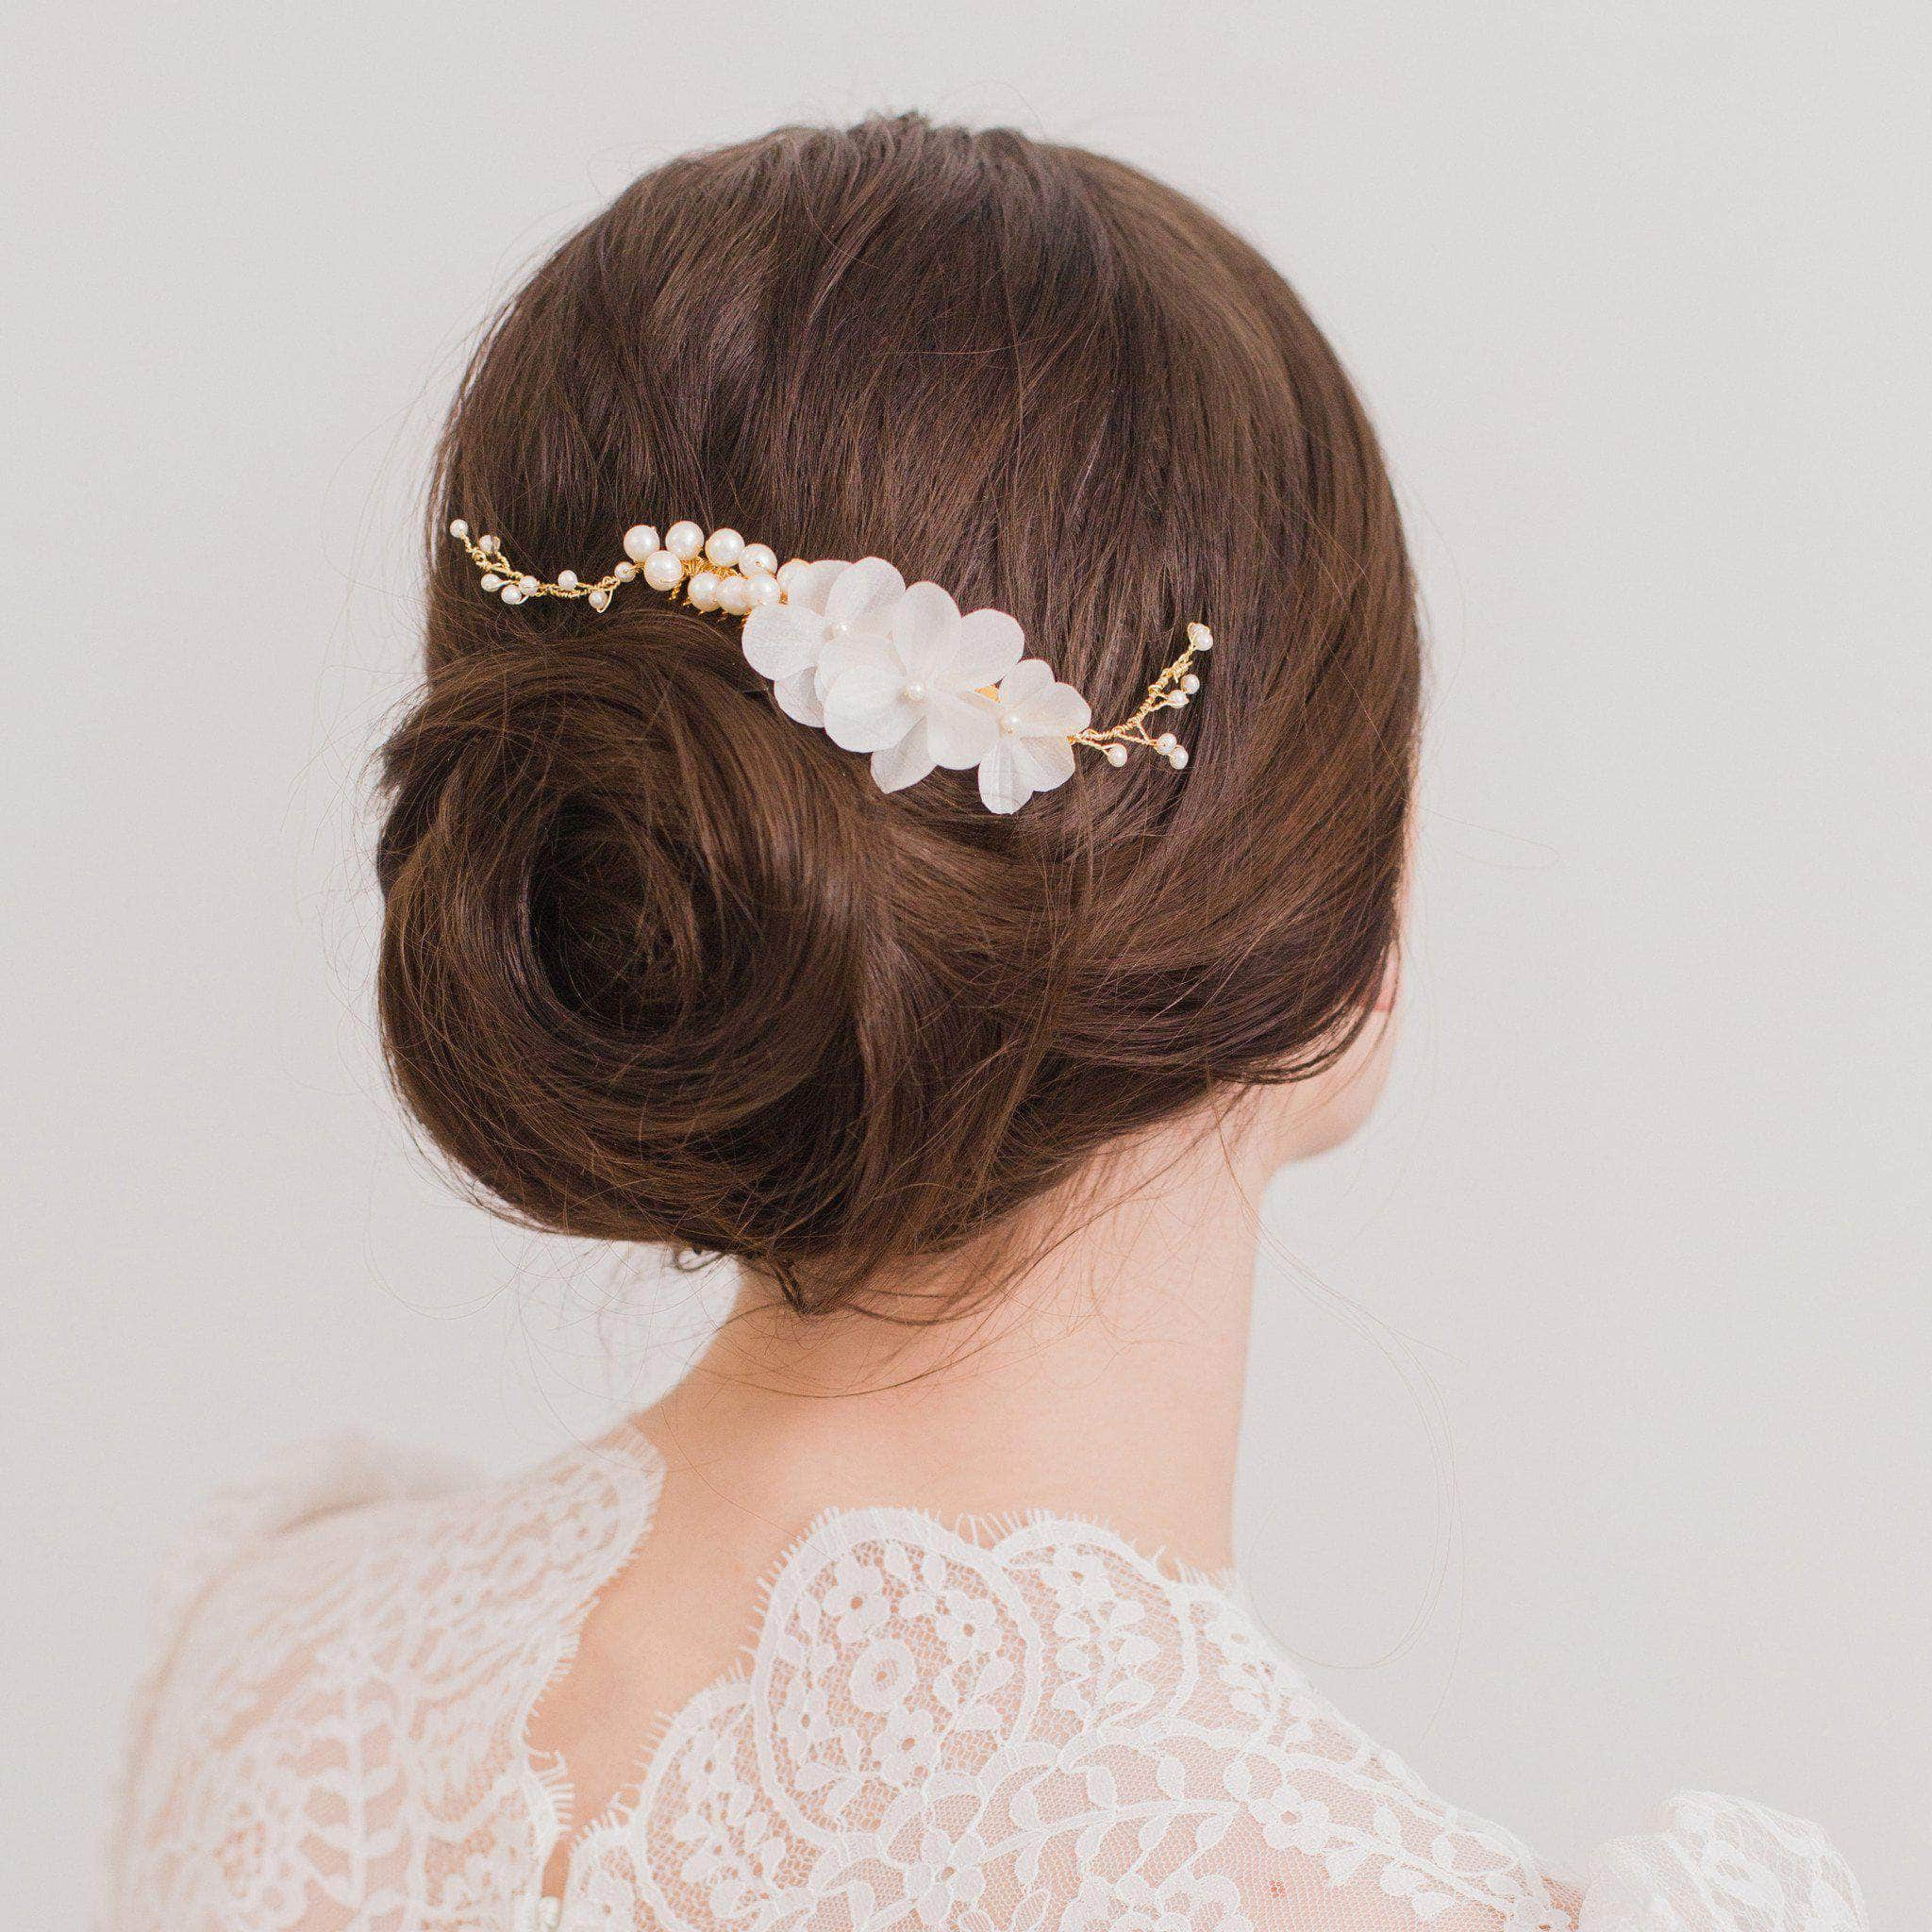 Floral Wedding Hair Comb By Britten: Silk Flower Comb For A Bride - 'Helvia'